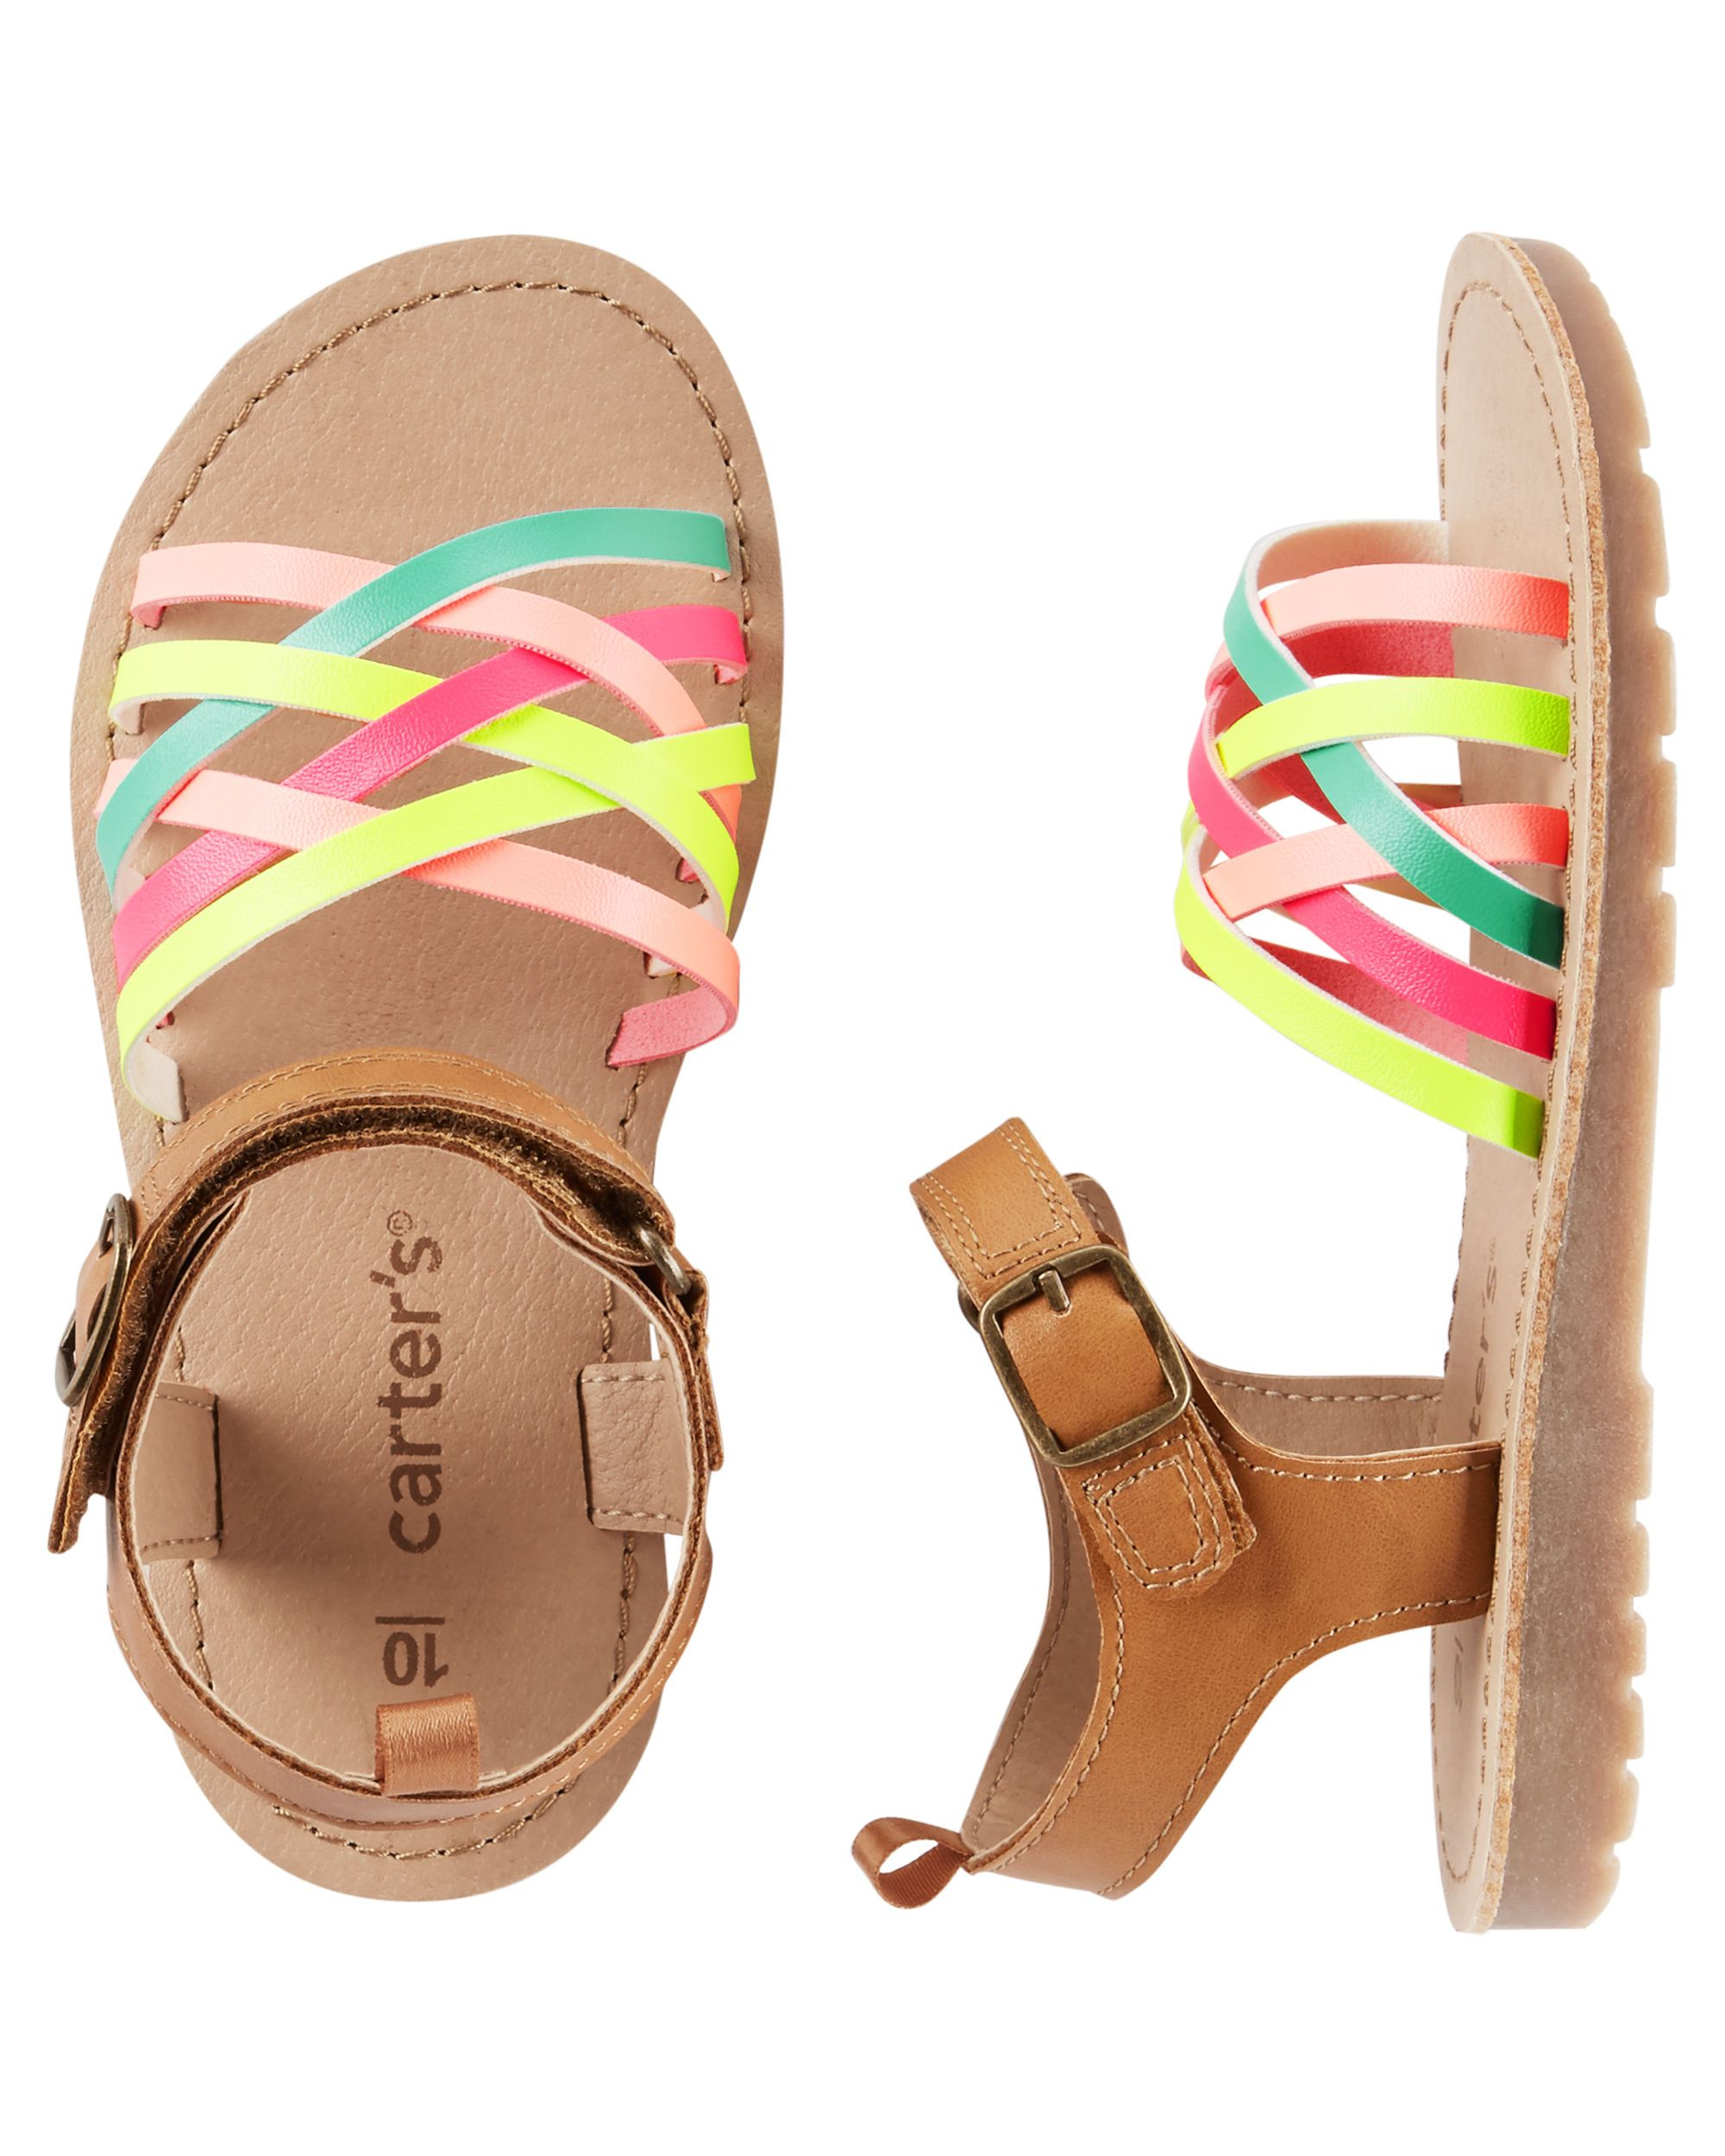 65287cc9ba11 Carter s Strappy Sandals